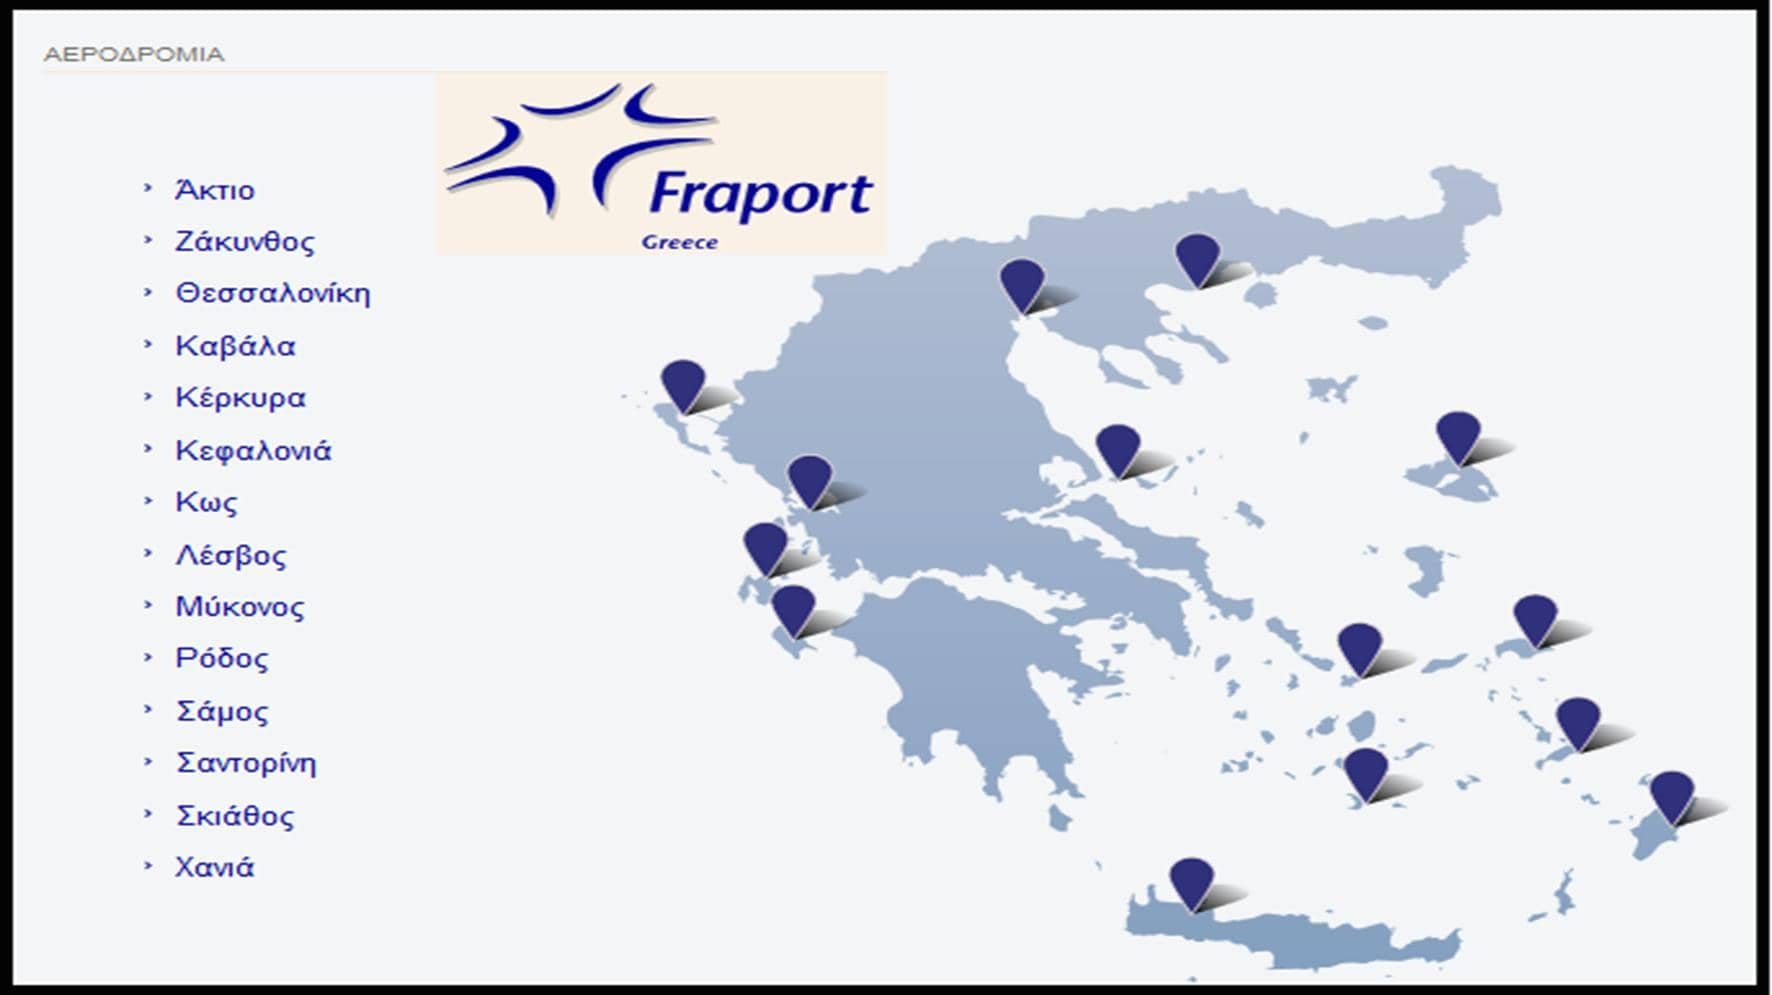 FRAPORT GREECE (Copy)